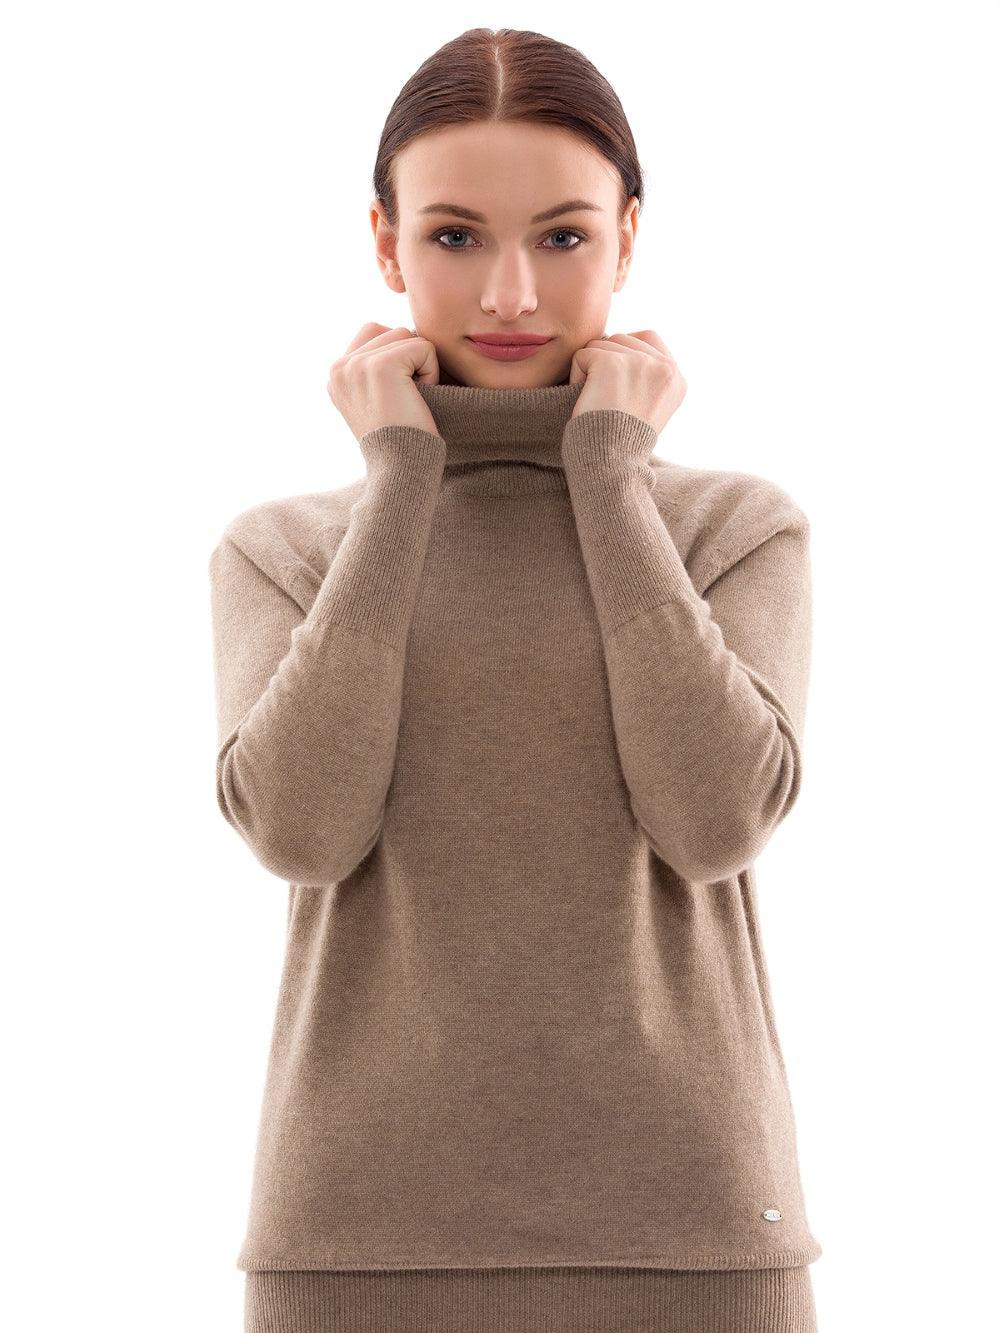 Inari Women's brown cashmere turtleneck sweater - front side - 100% high-quality cashmere - Inari-clothing.fi